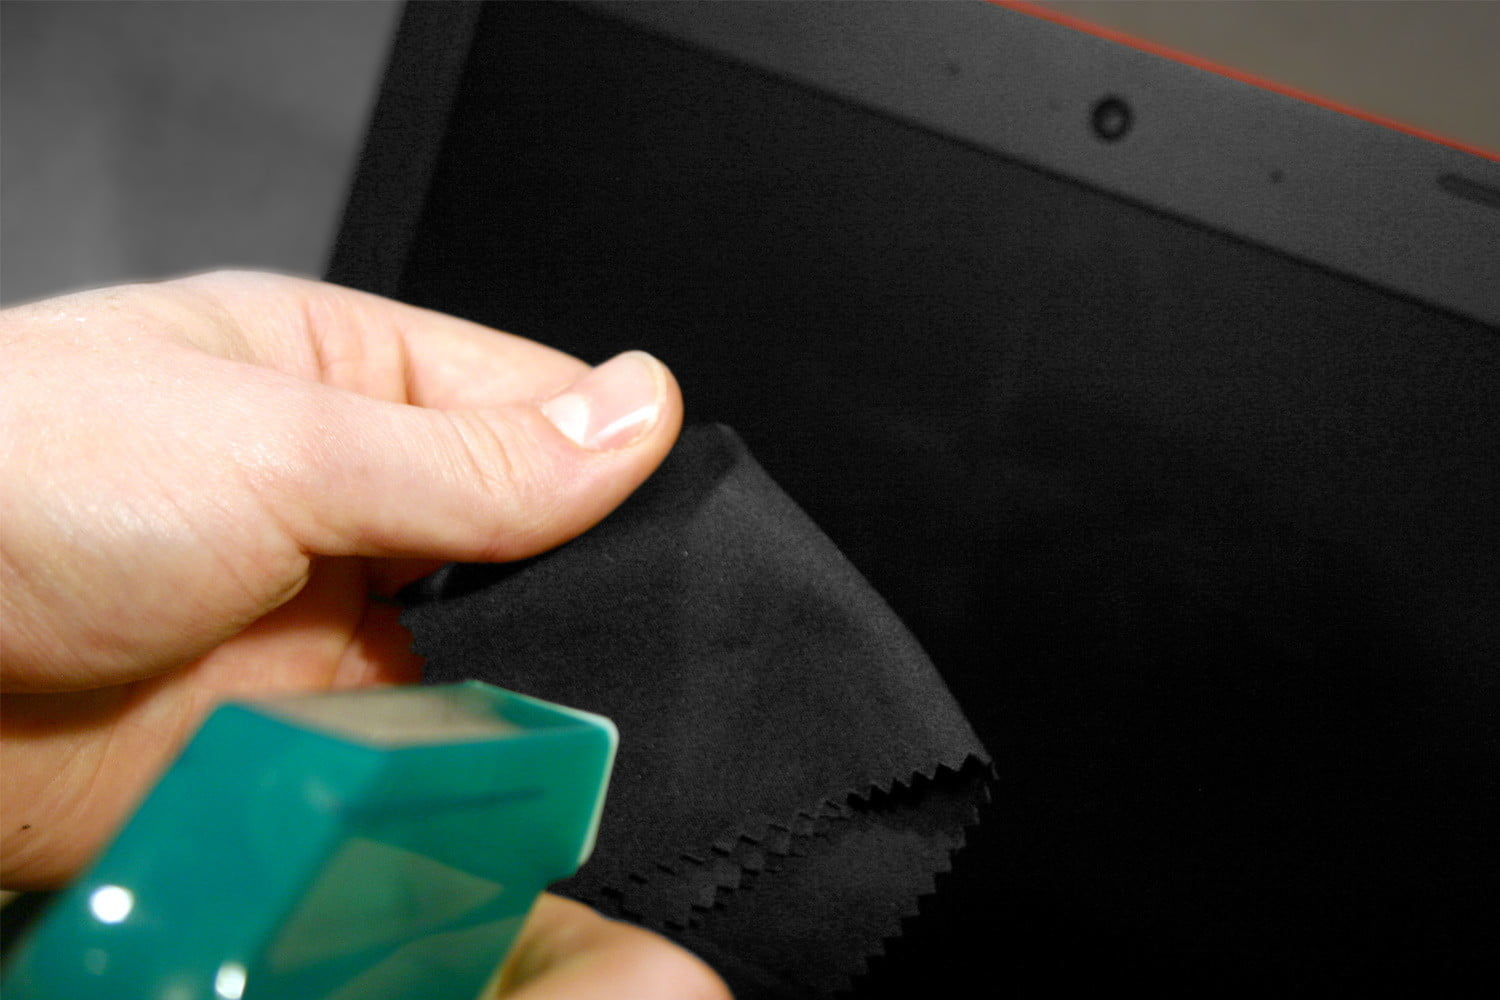 How To Clean The Laptop Screen Without Damaging It